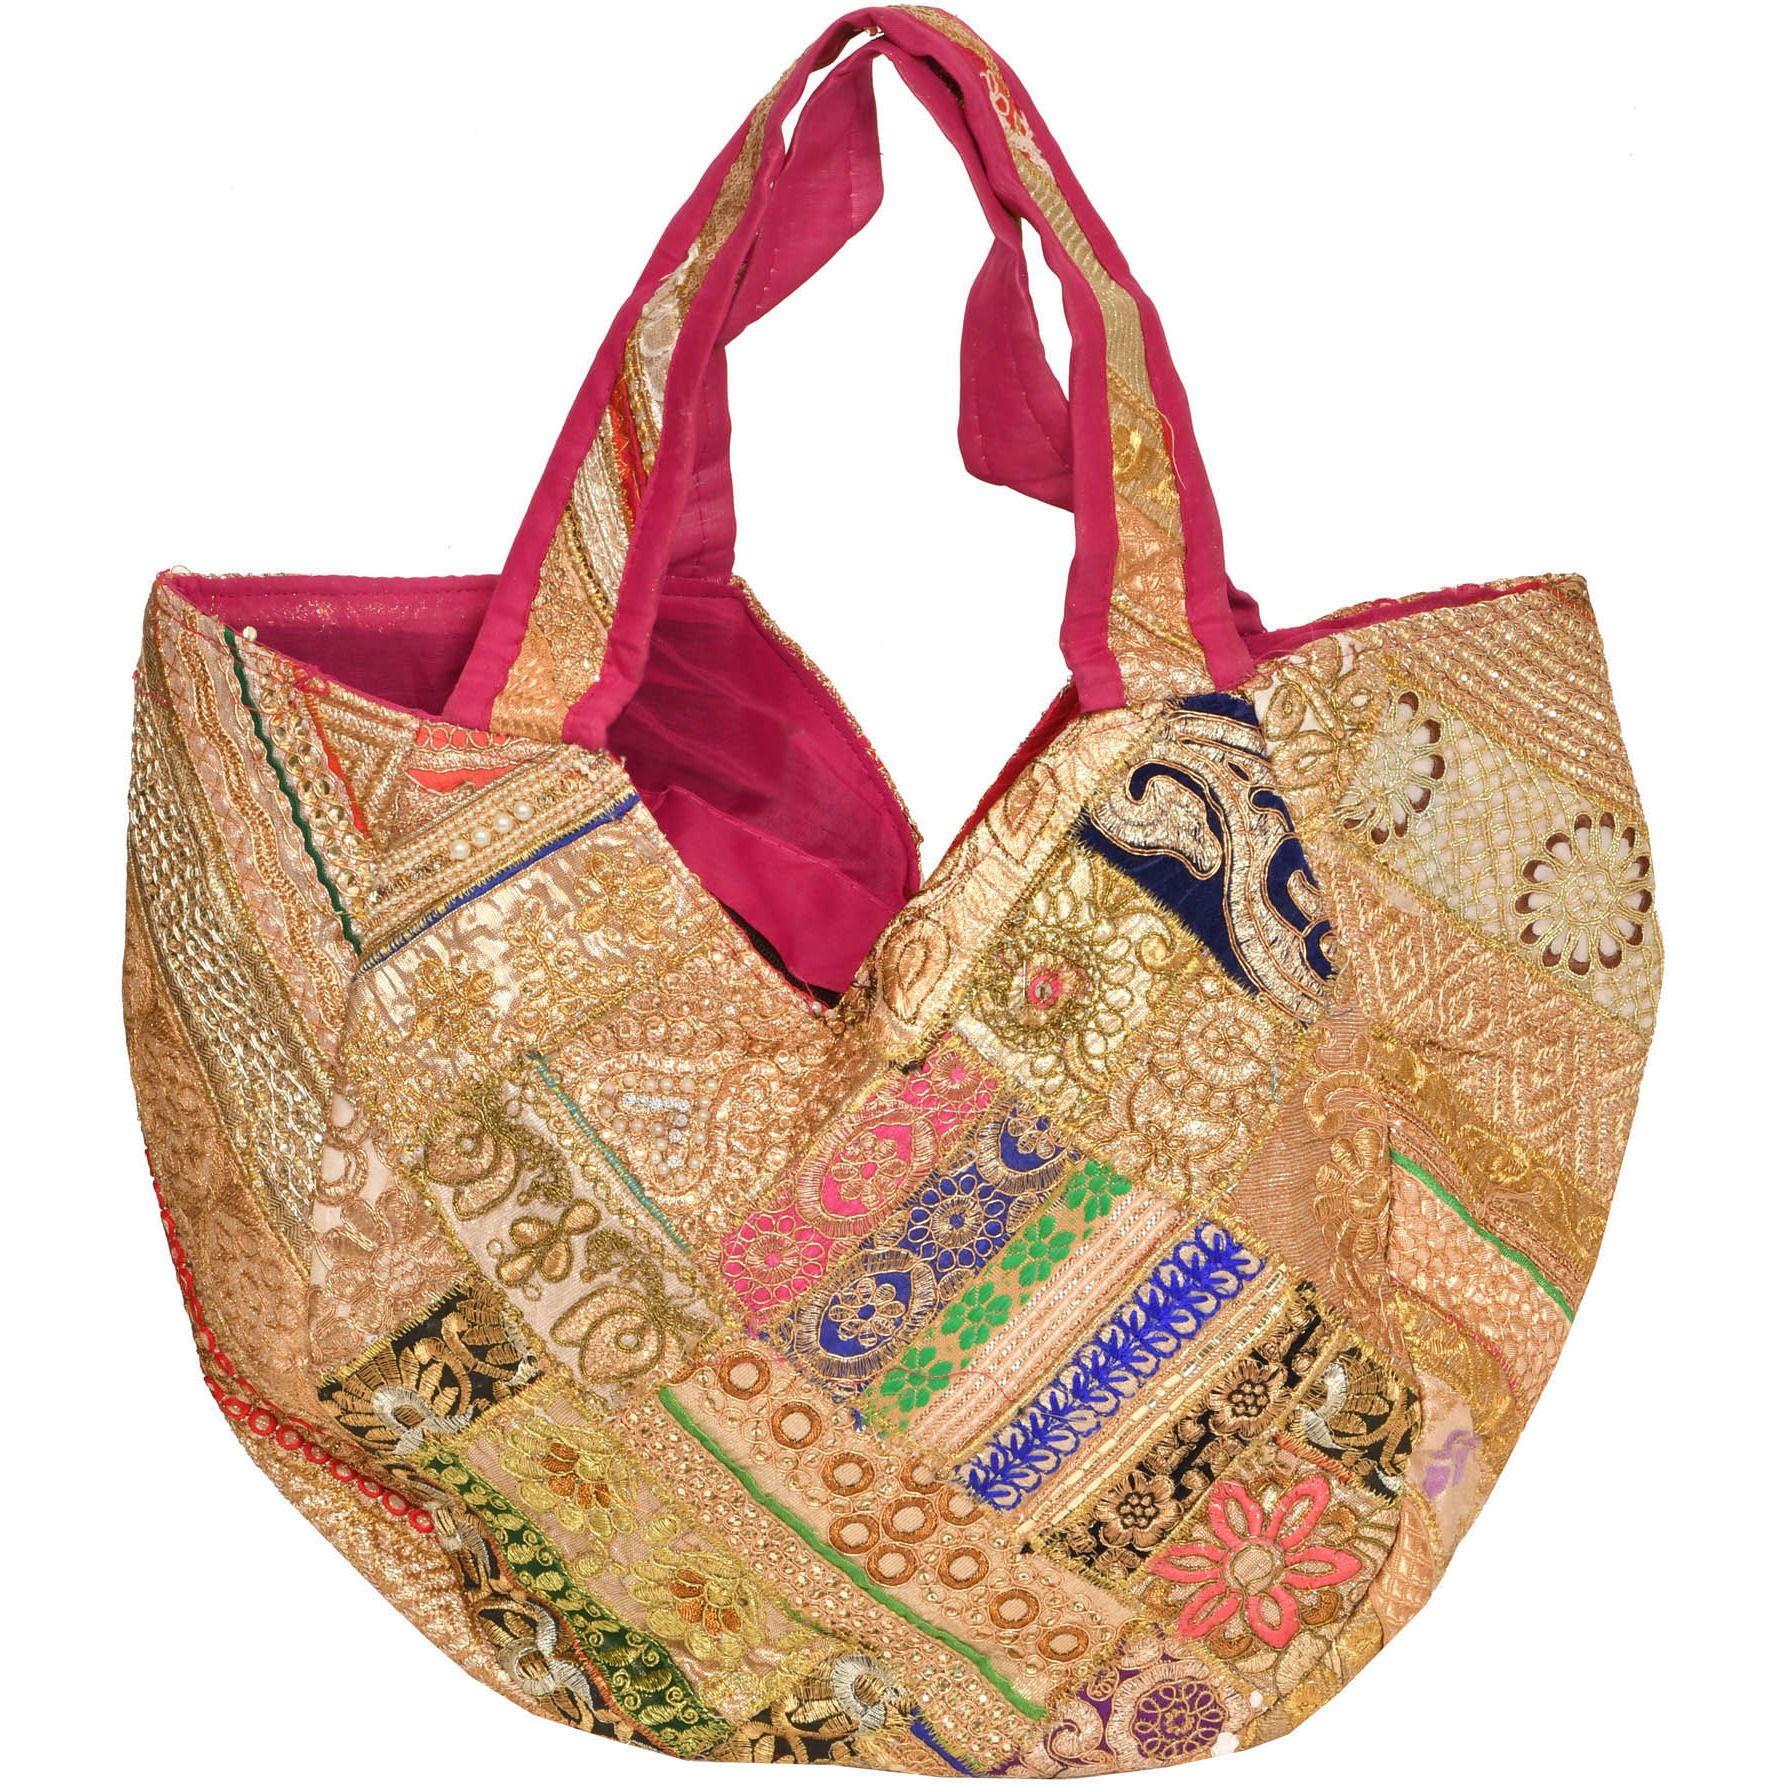 Shopper Bag from Gujarat with Golden-Embroidery All-Over and Sequins